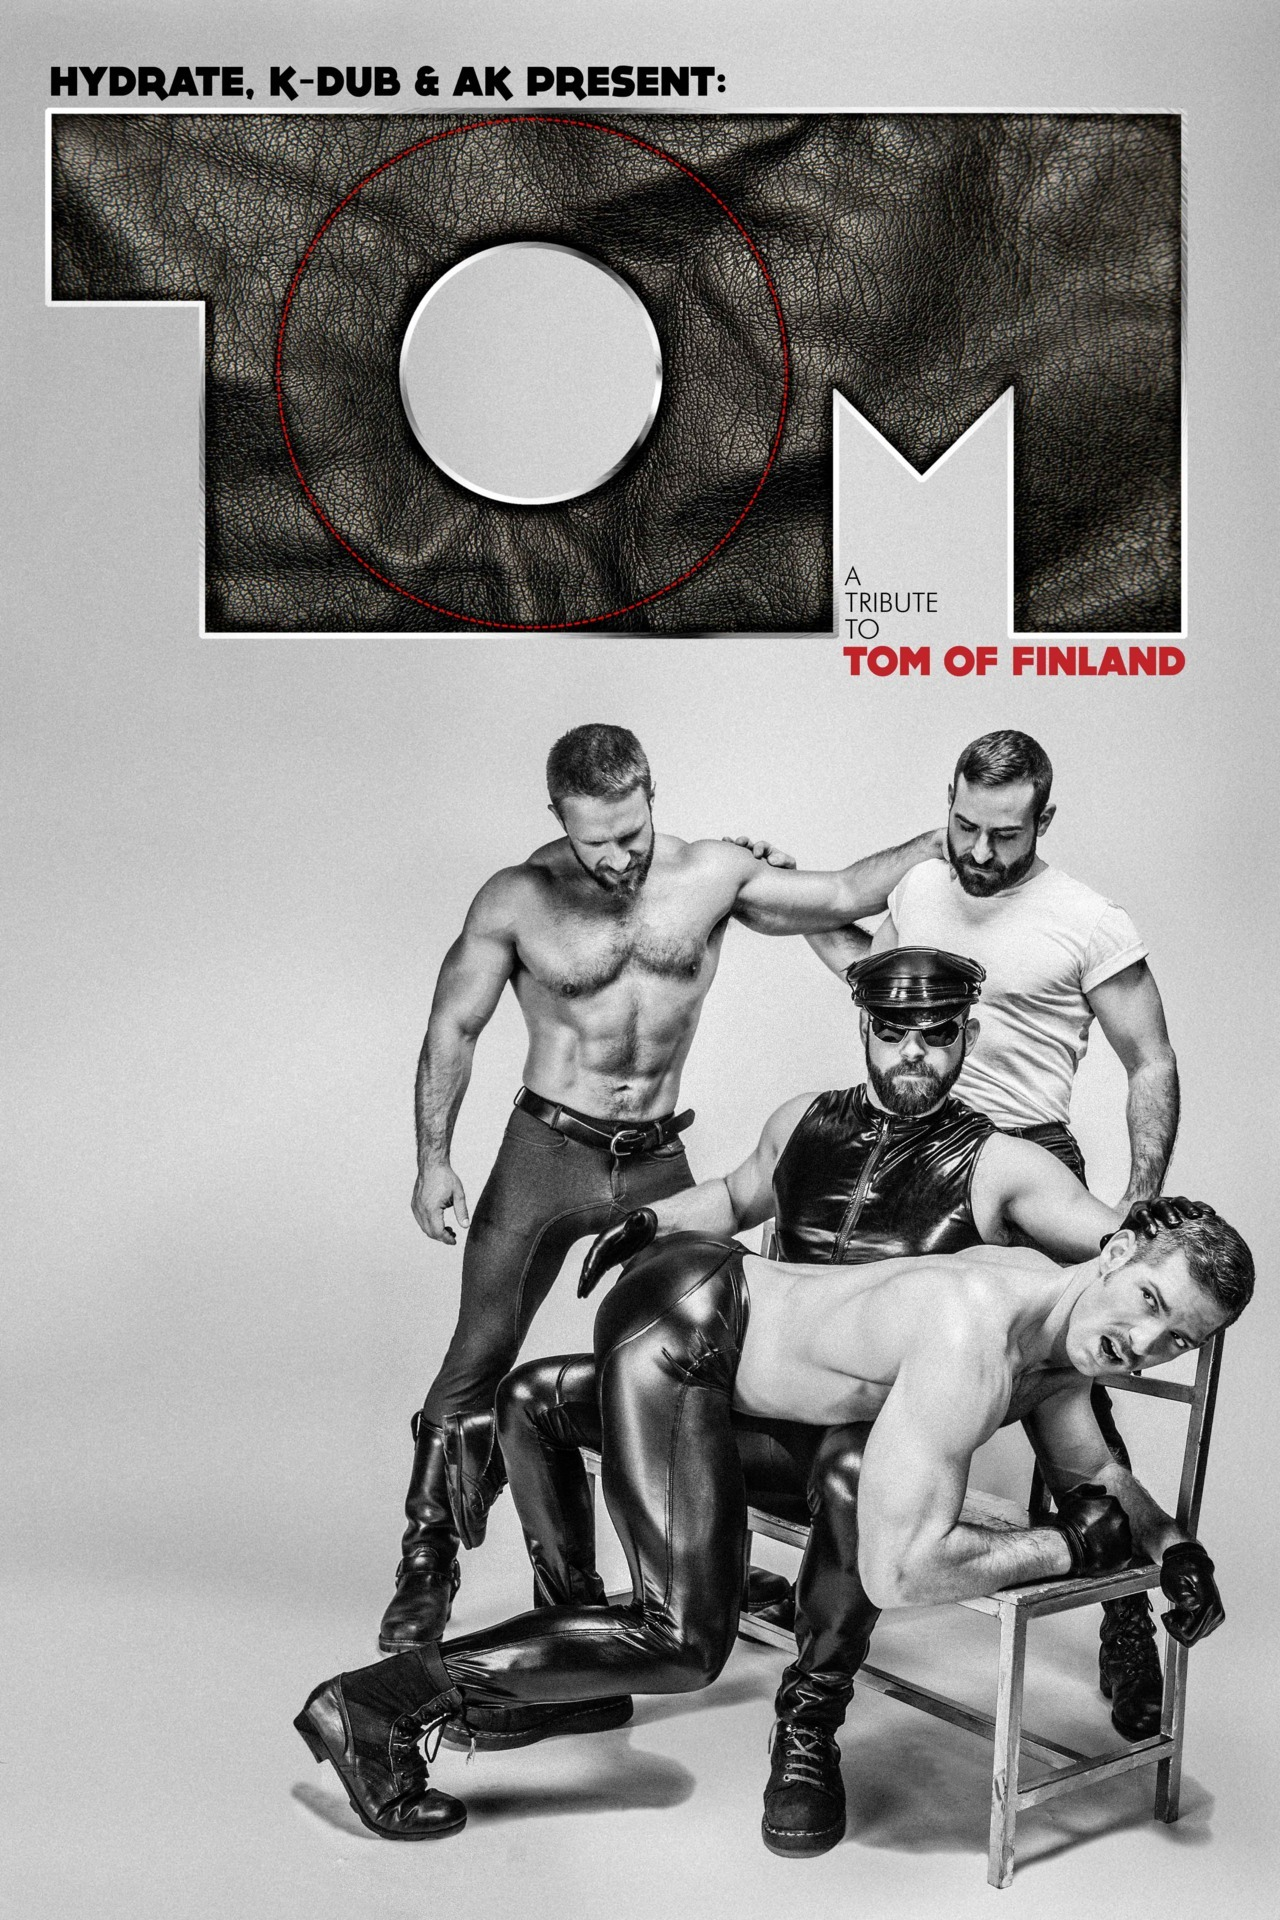 Poster for Tom of Finland night at Manhole. This is the 'light' copy version that Eric Reda did for it. His design is pretty stellar and really does elevate anything there was in the photo. Link to event:  https://www.facebook.com/events/297871136956151/